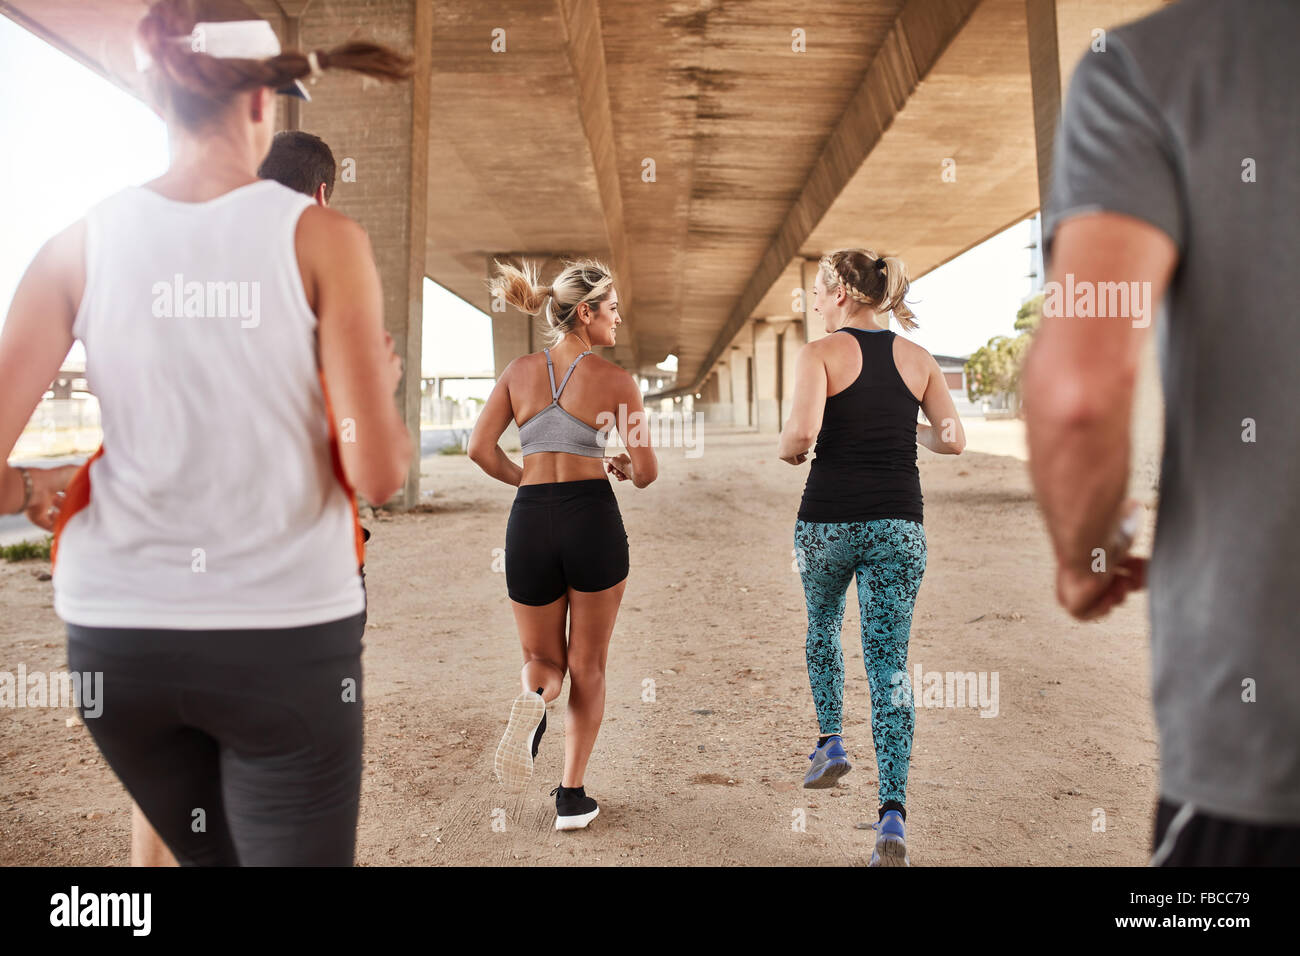 Portrait of group of runners in fitness clothing running under a bridge. Young men and women running together. - Stock Image